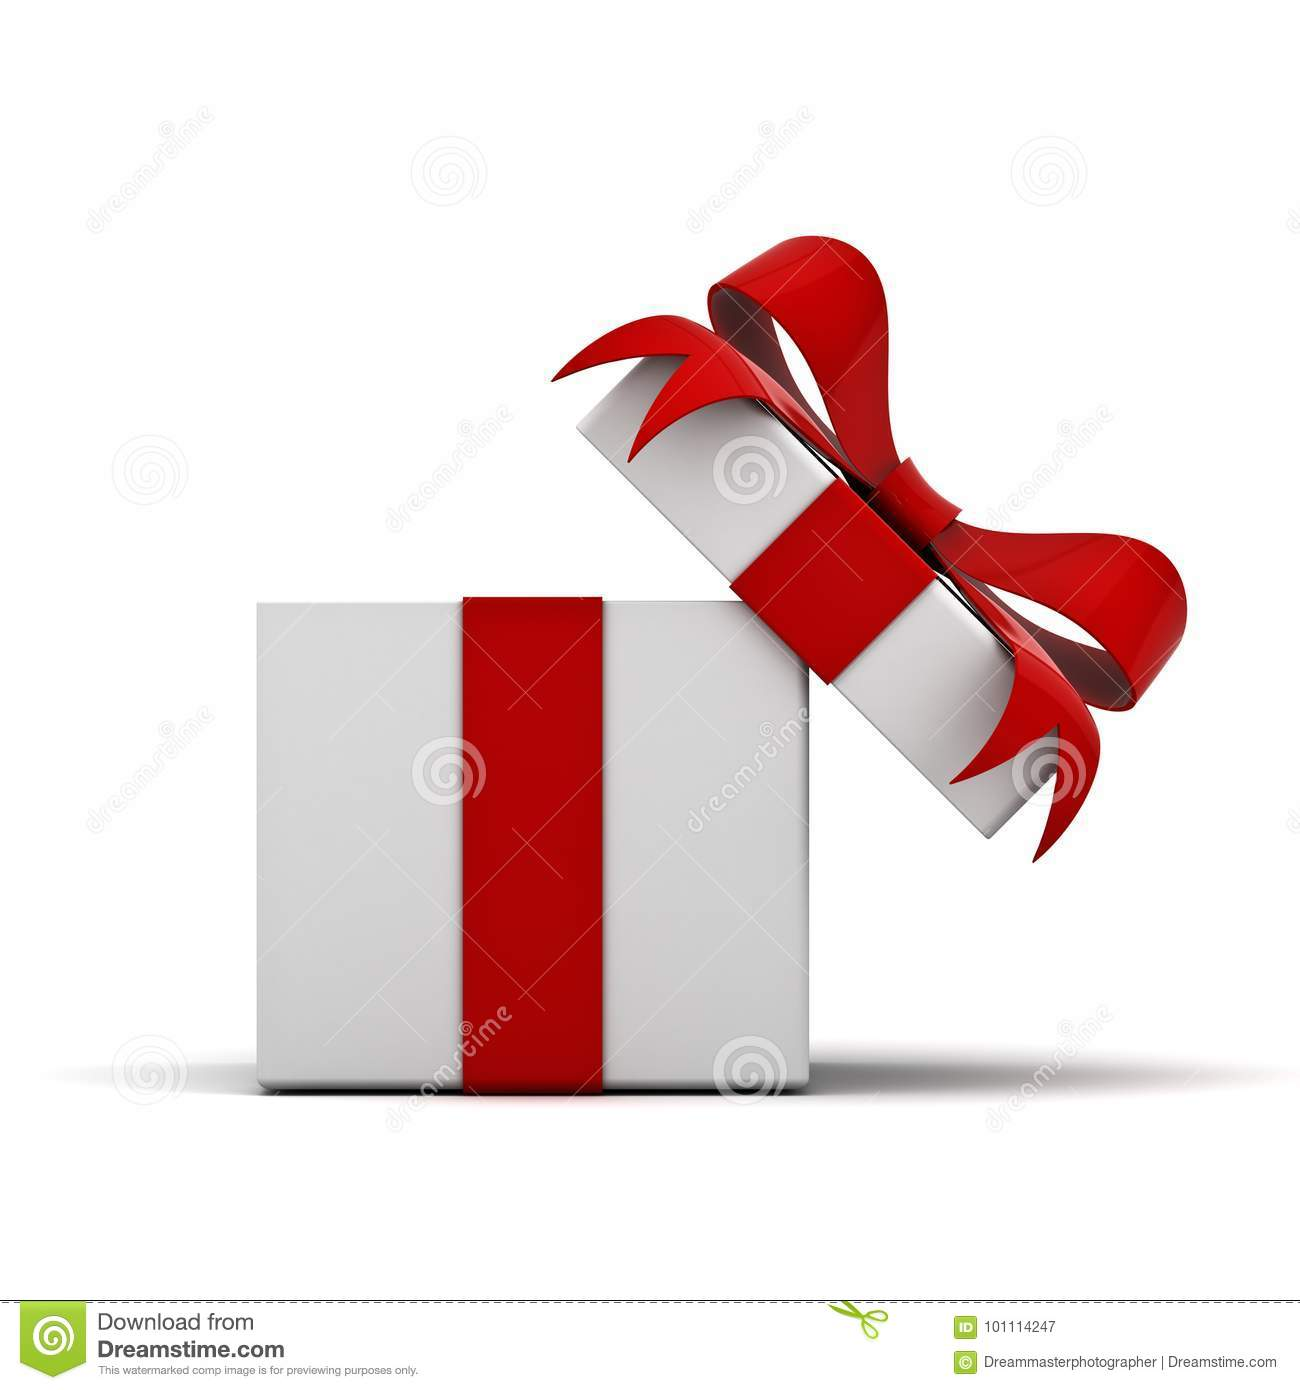 Open gift box and present box with red ribbon bow isolated on white background